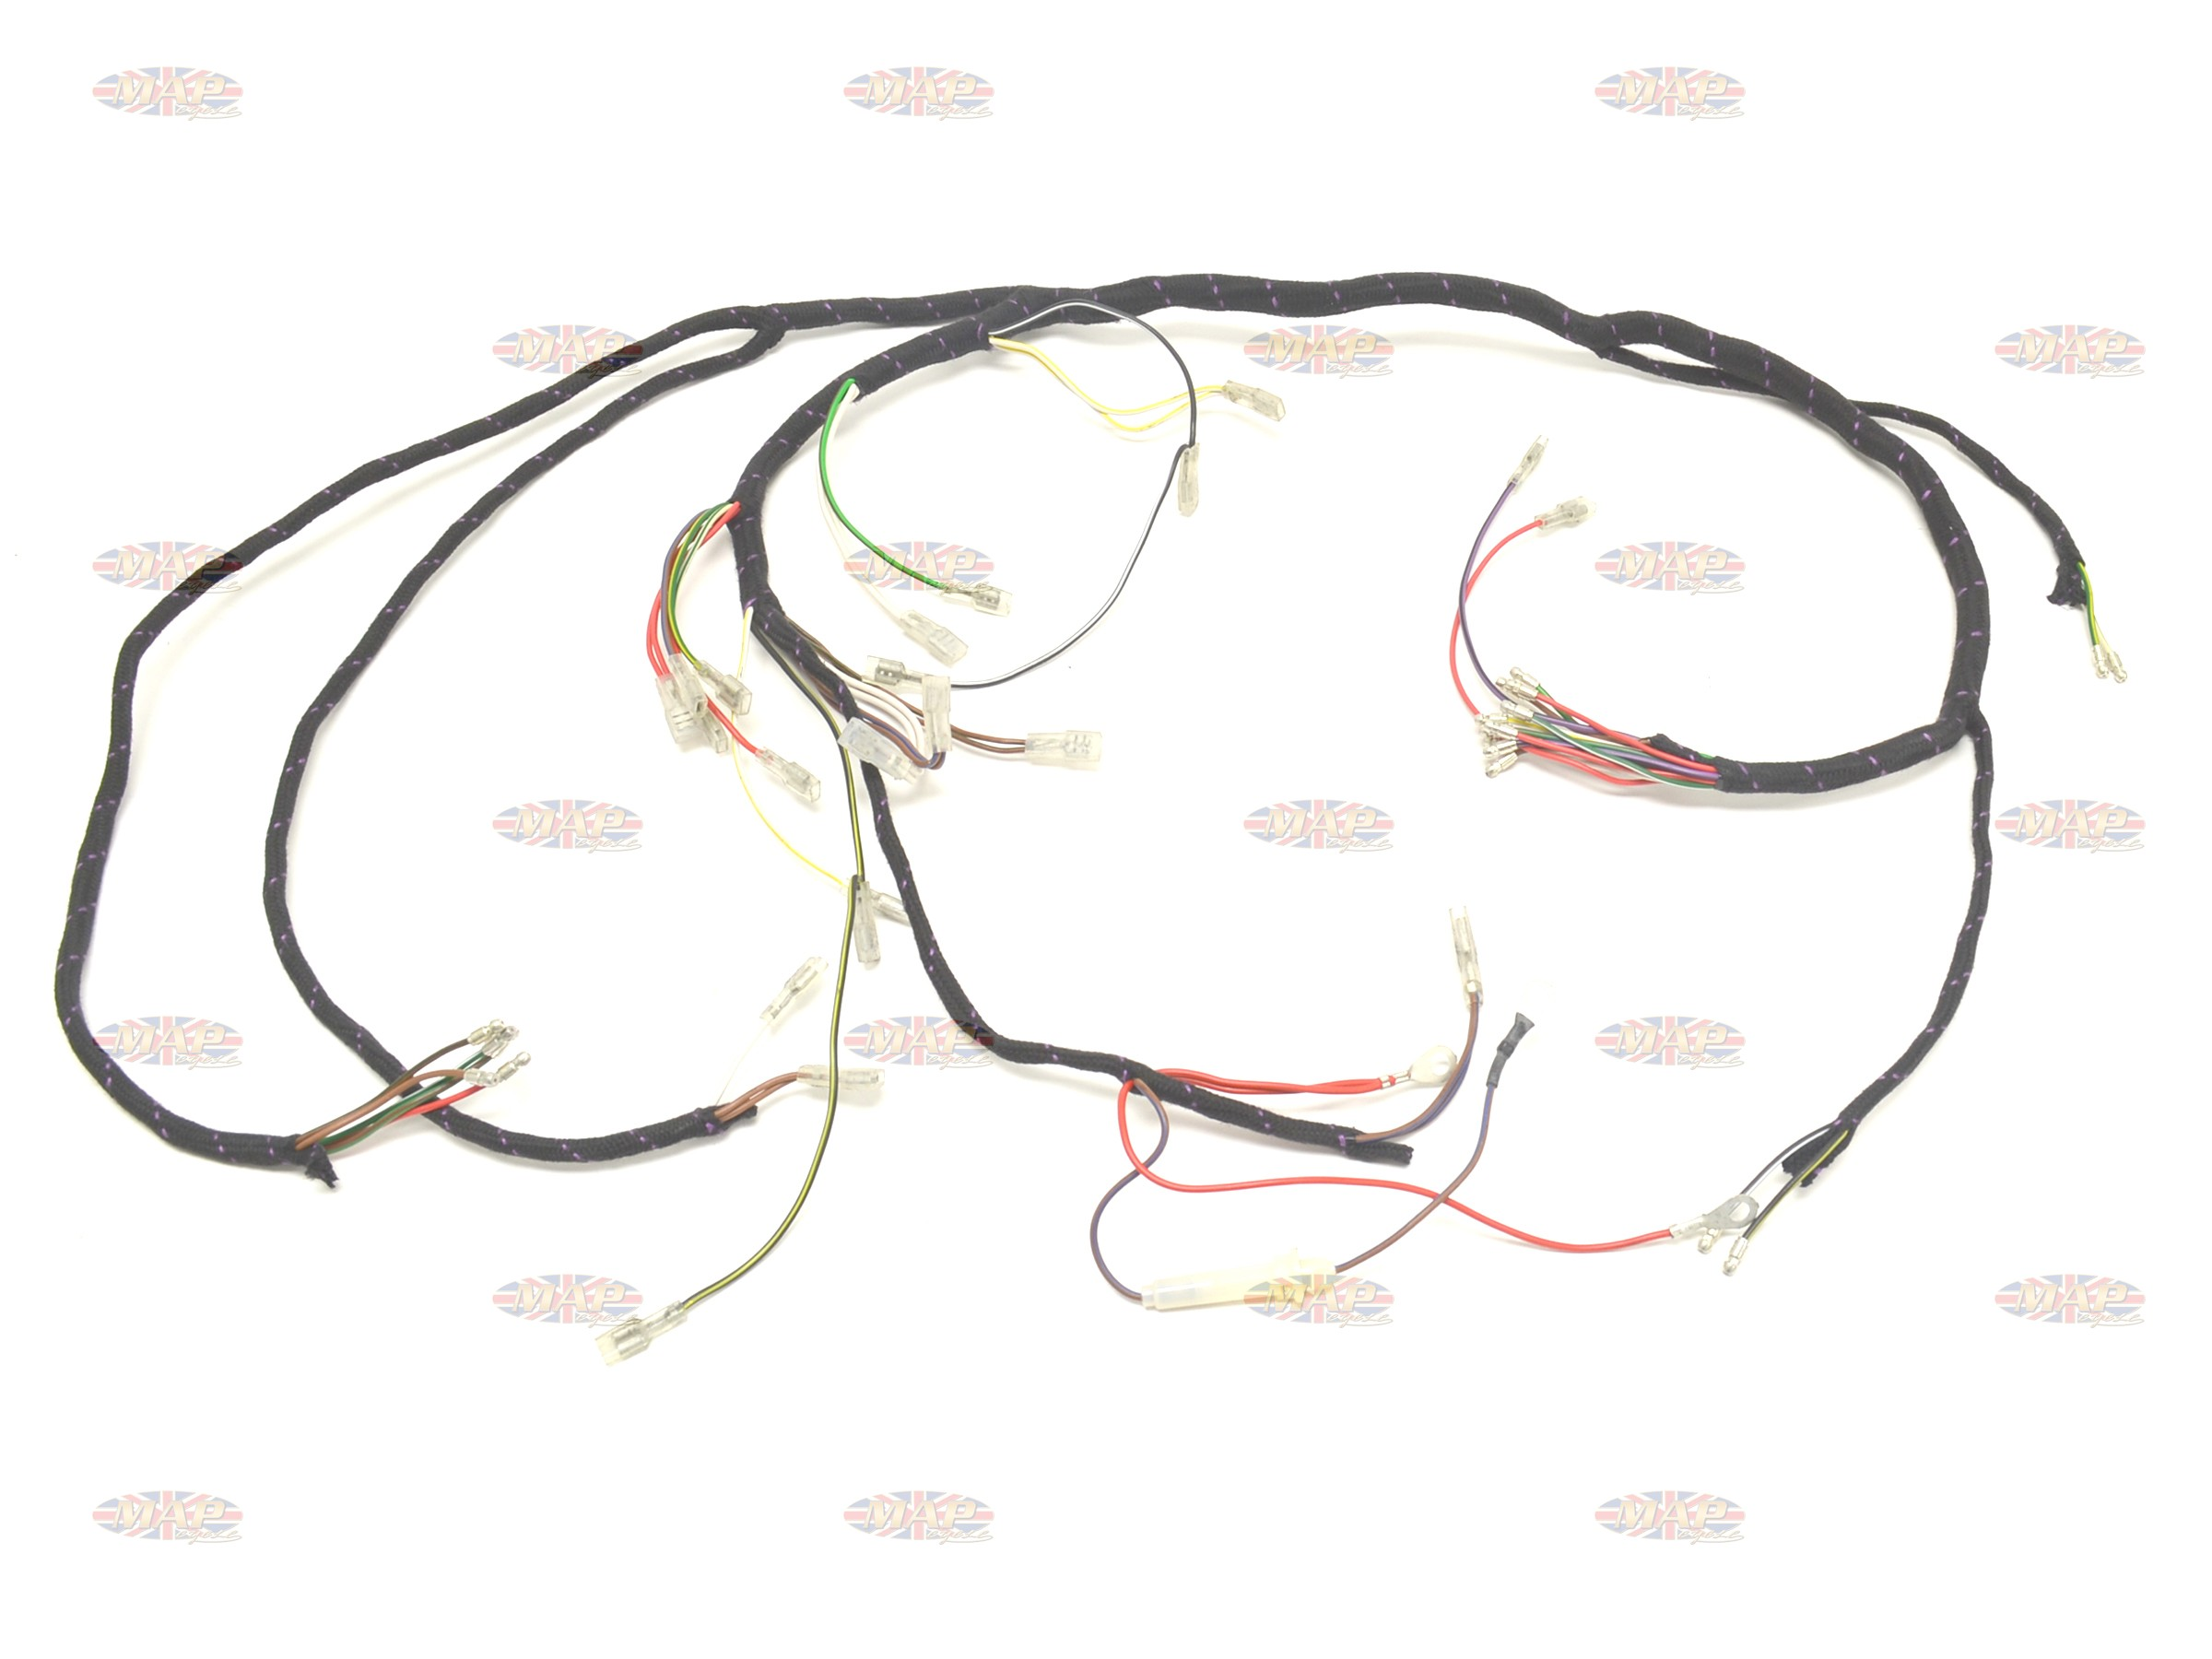 Triumph Bonneville Wiring Harness Best Electrical Circuit Bobber 1971 73 T120 Tr6 Tiger Uk Made Main Rh Mapcycle Com